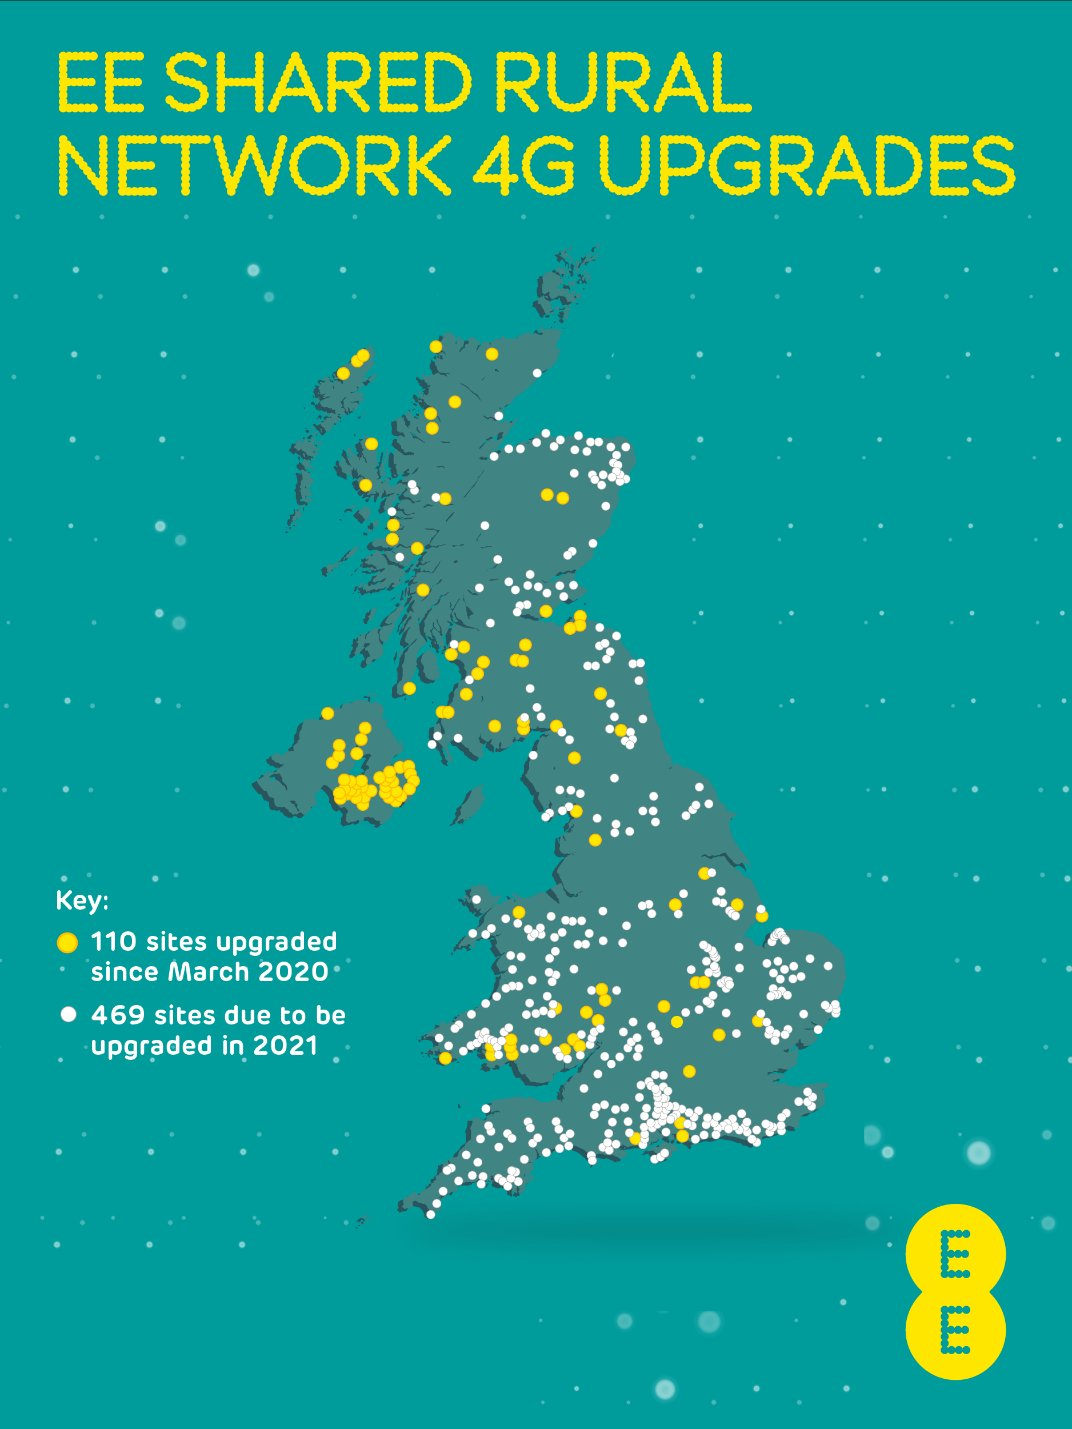 EE TO EXTEND 4G COVERAGE IN 26 PLACES IN EAST MIDLANDS IN 2021 TO BOOST RURAL CONNECTIVITY